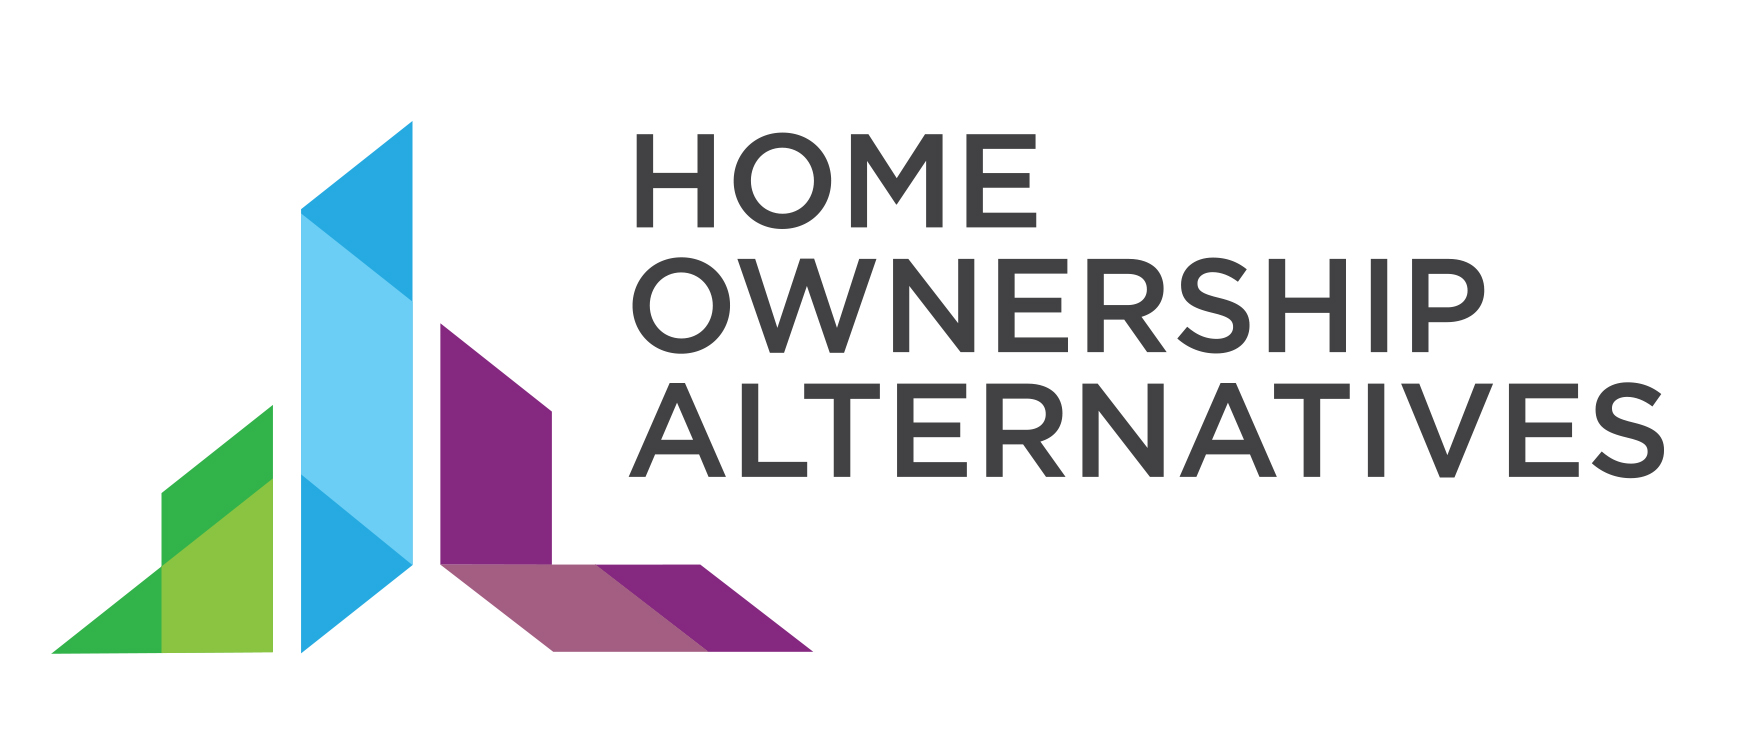 Home Ownership Alternatives